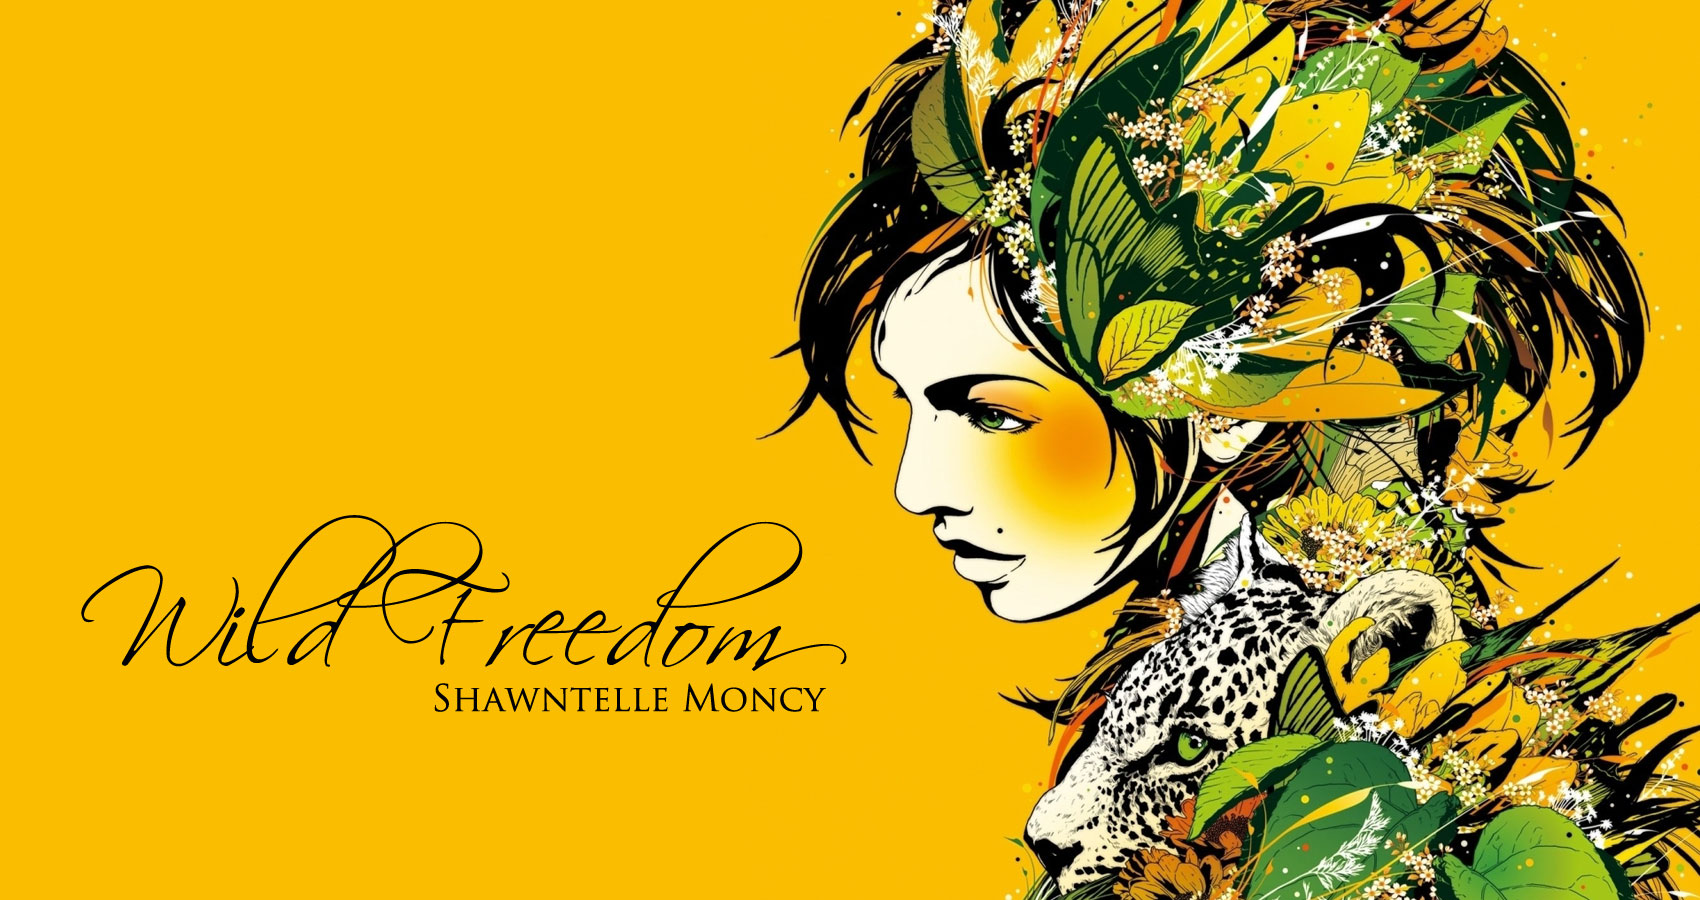 Wild Freedom by Shawntelle Moncy at Spillwords.com